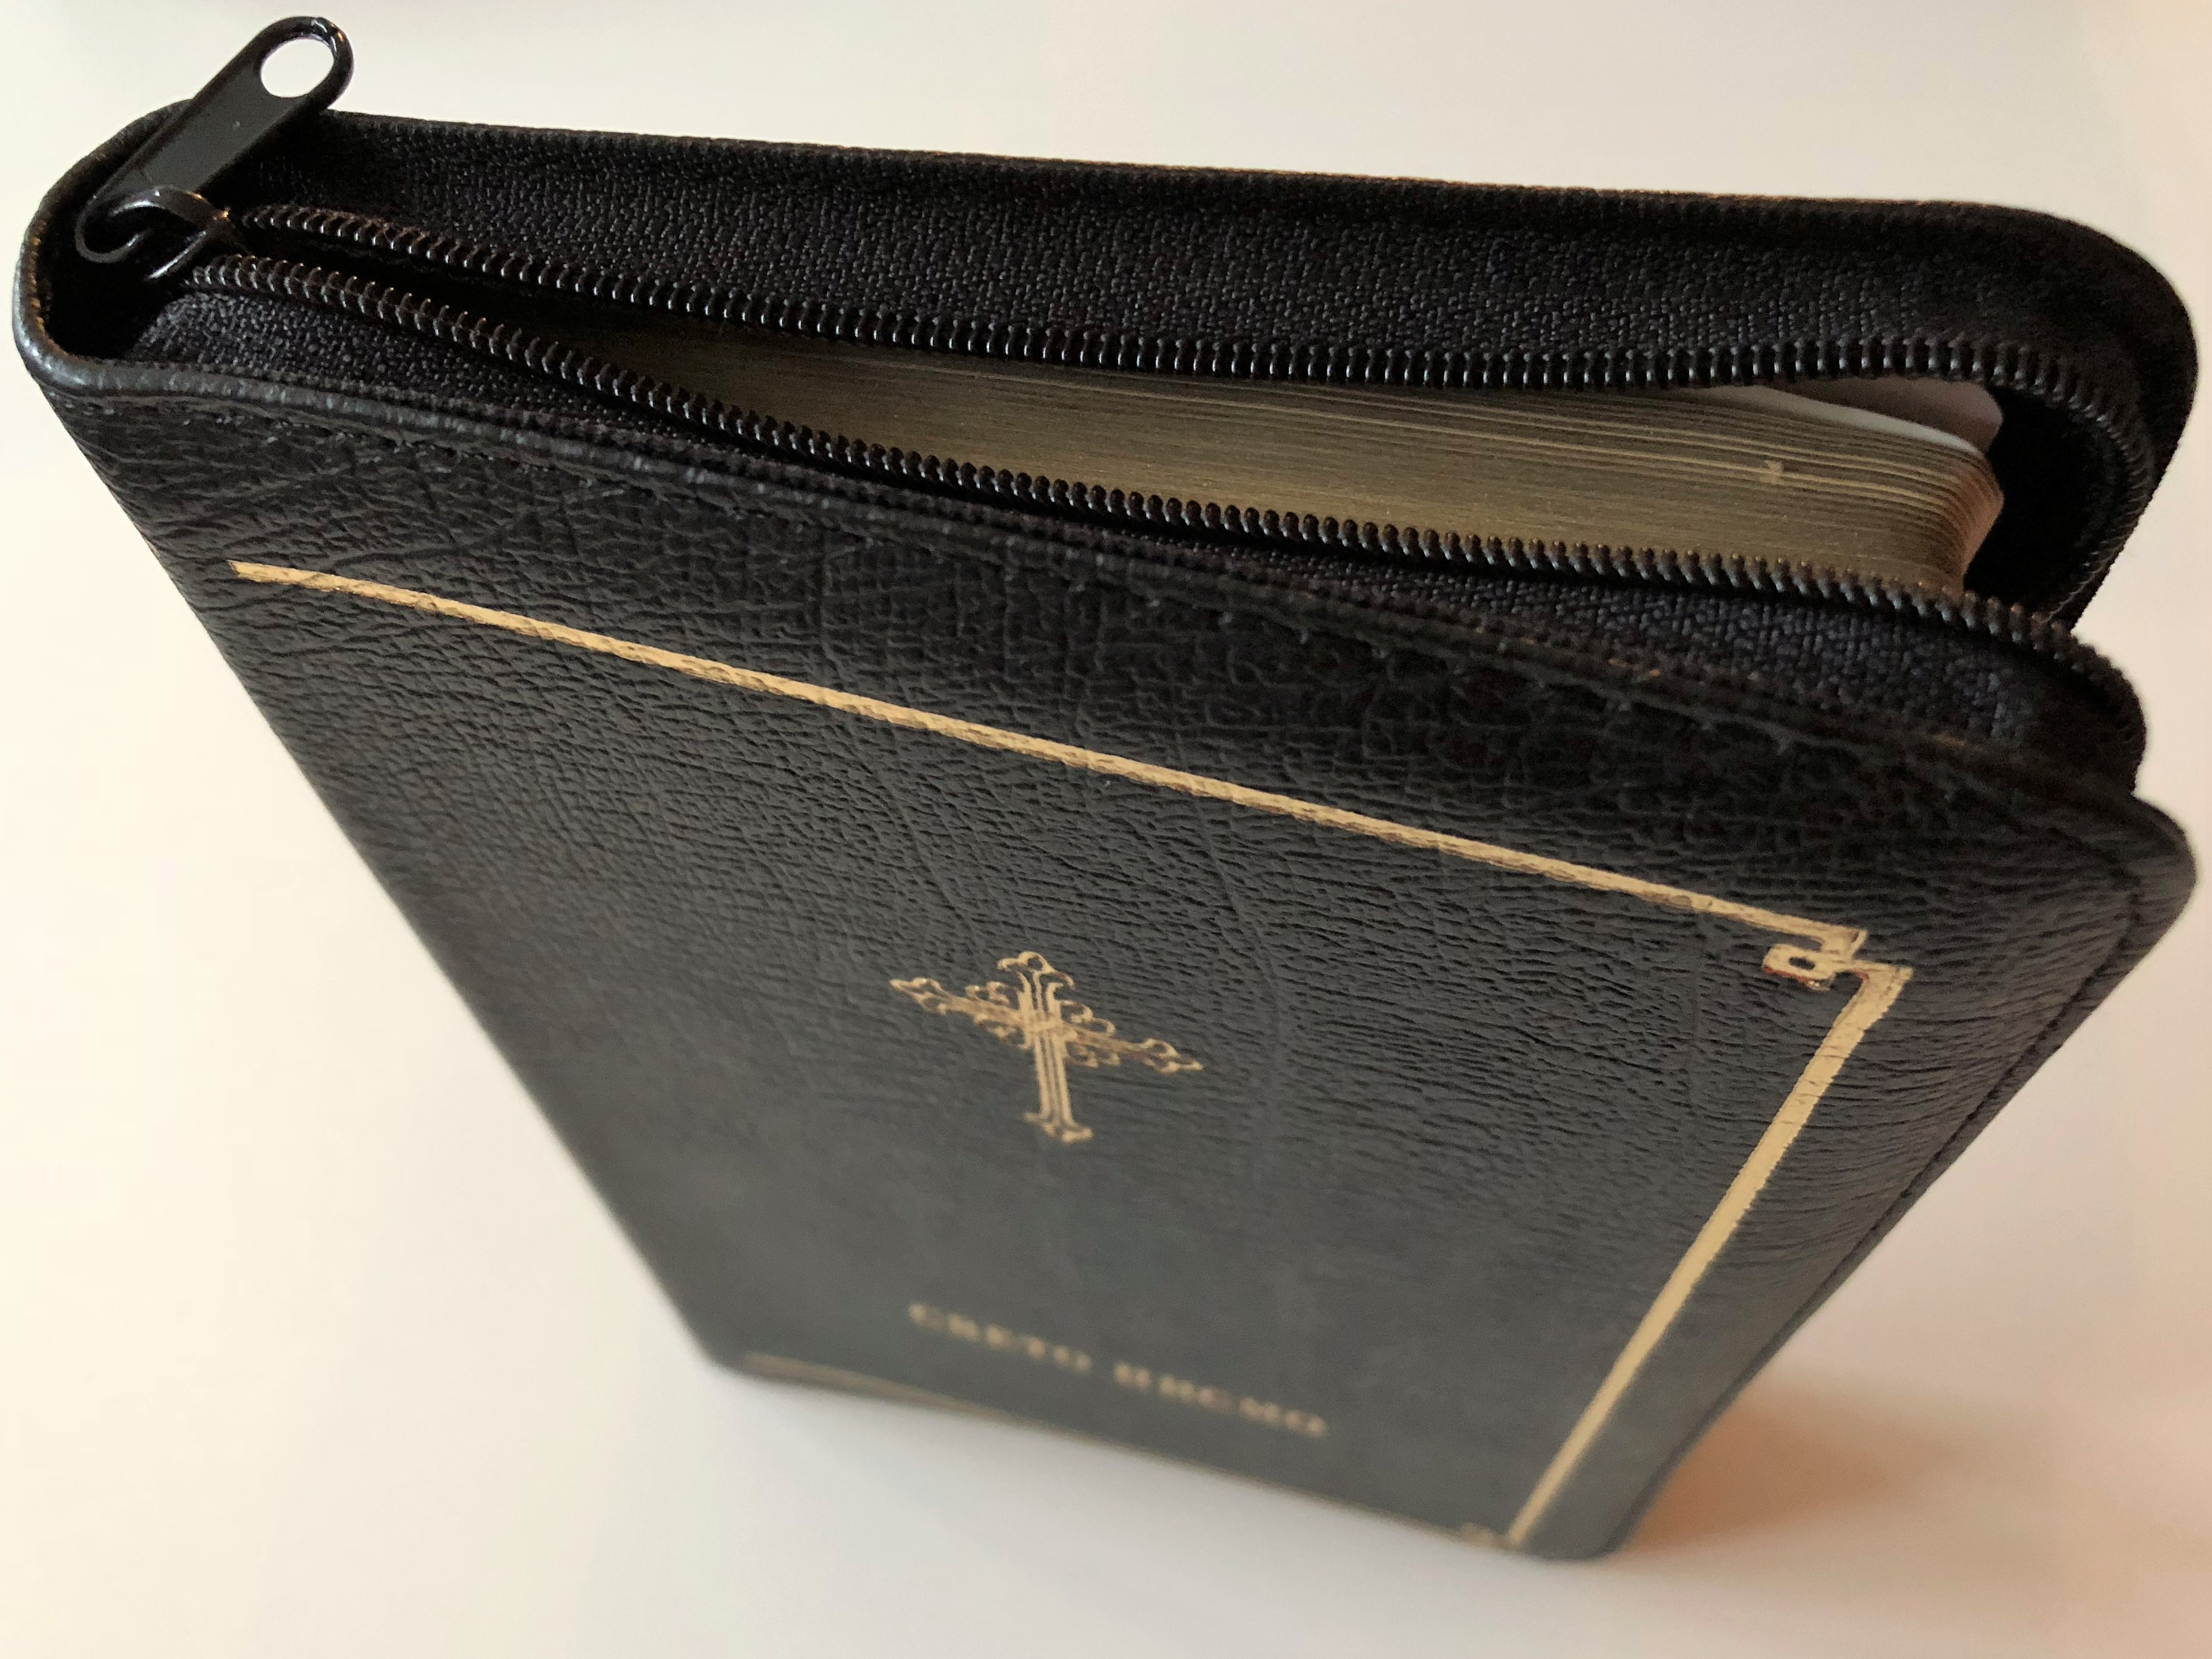 serbian-bible-040-black-leather-bound-with-golden-edges-and-zipper-sb047z-6-.jpg